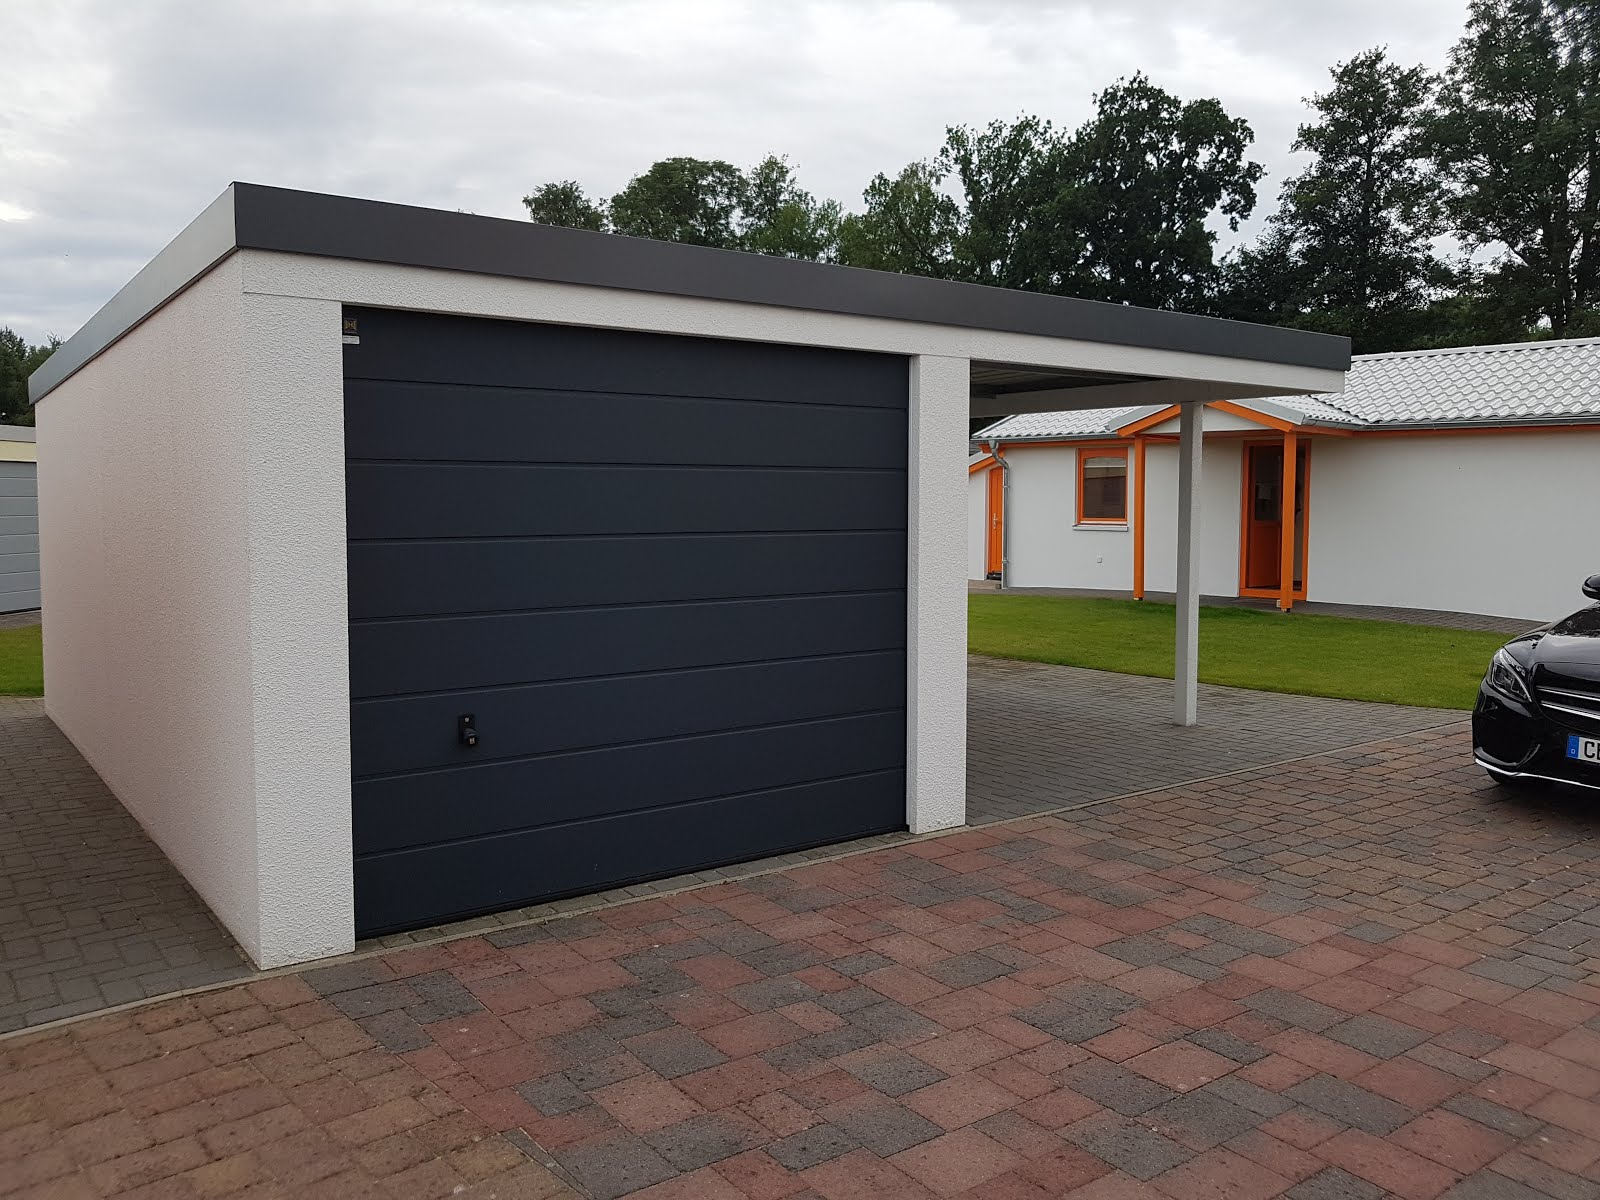 Garage Und Carport Kombination Die Garage Carport